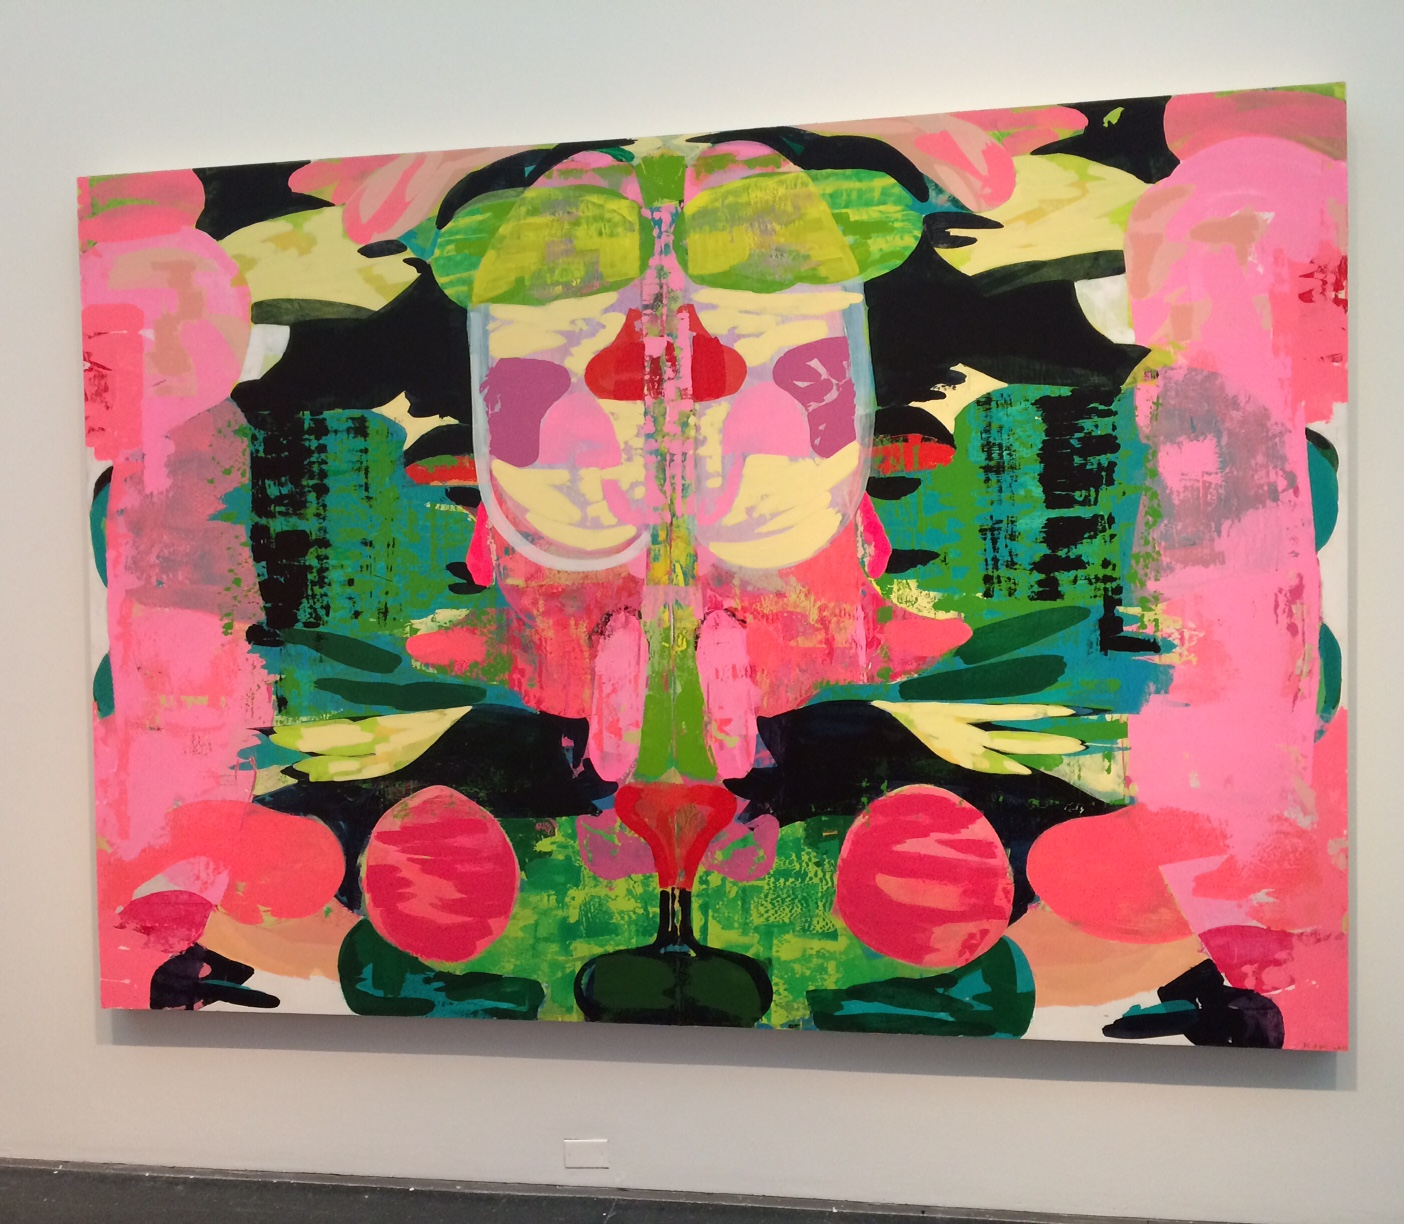 The Kerry James Marshall exhibition at The MCA Chicago.